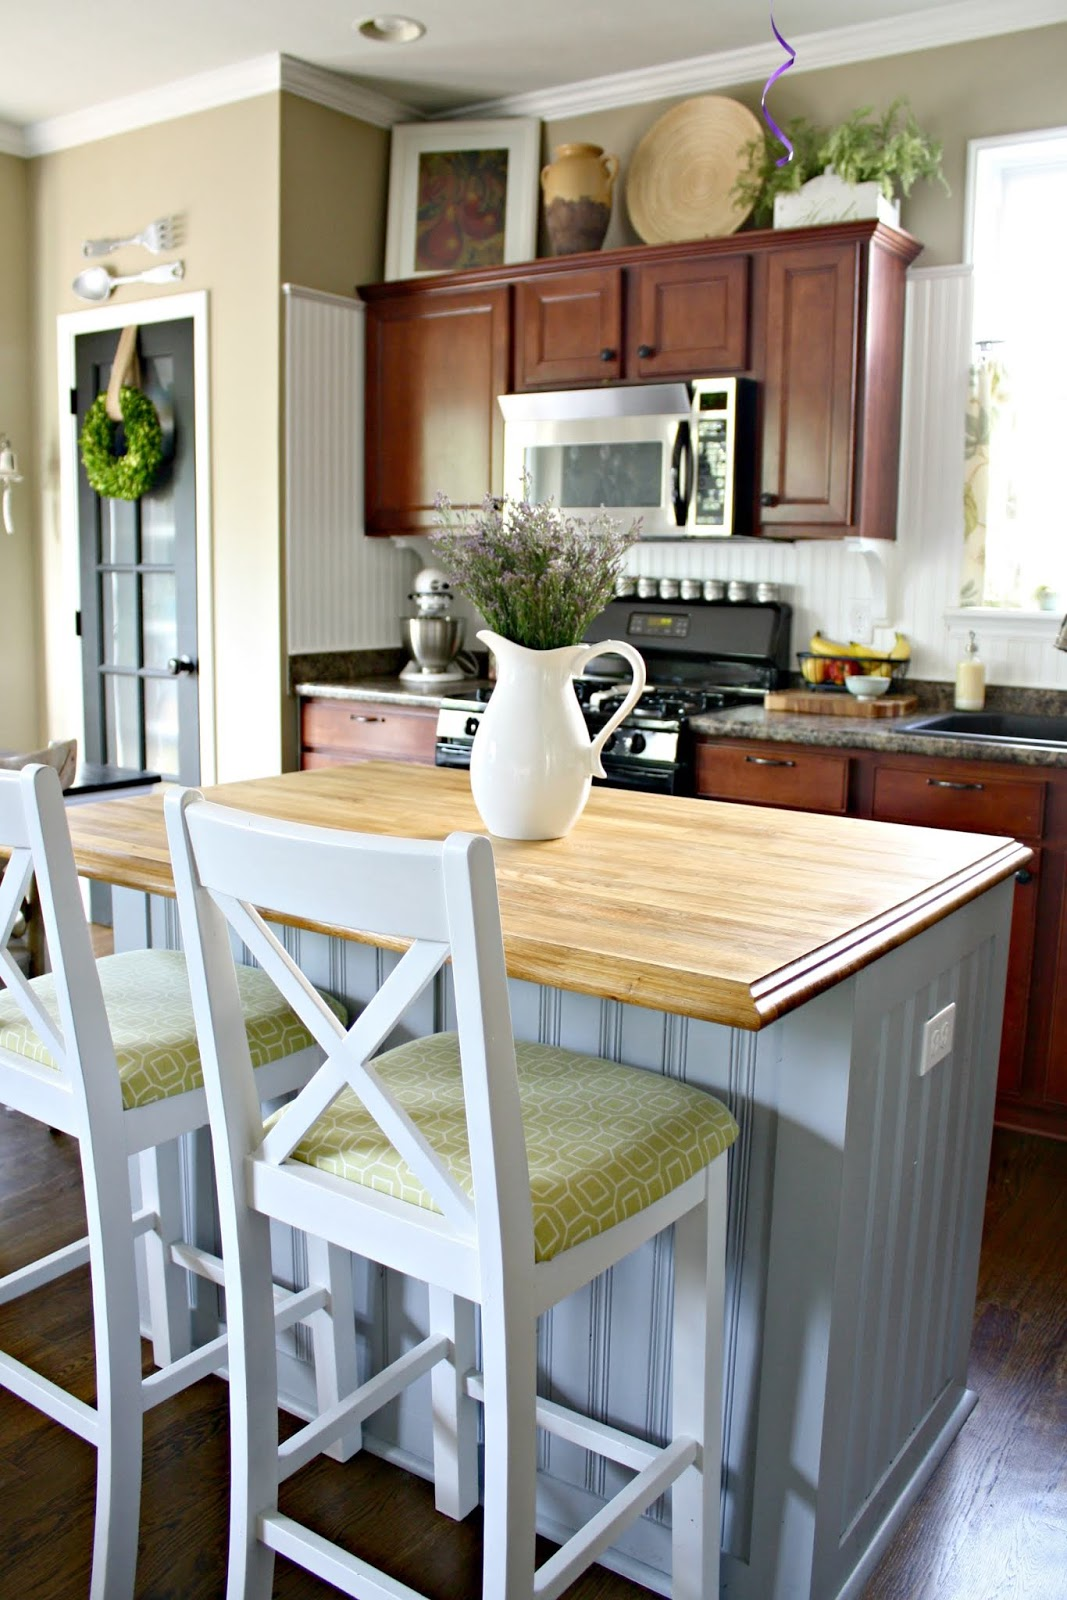 Diy Tricks To Customize A Kitchen Island From Thrifty Decor Chick